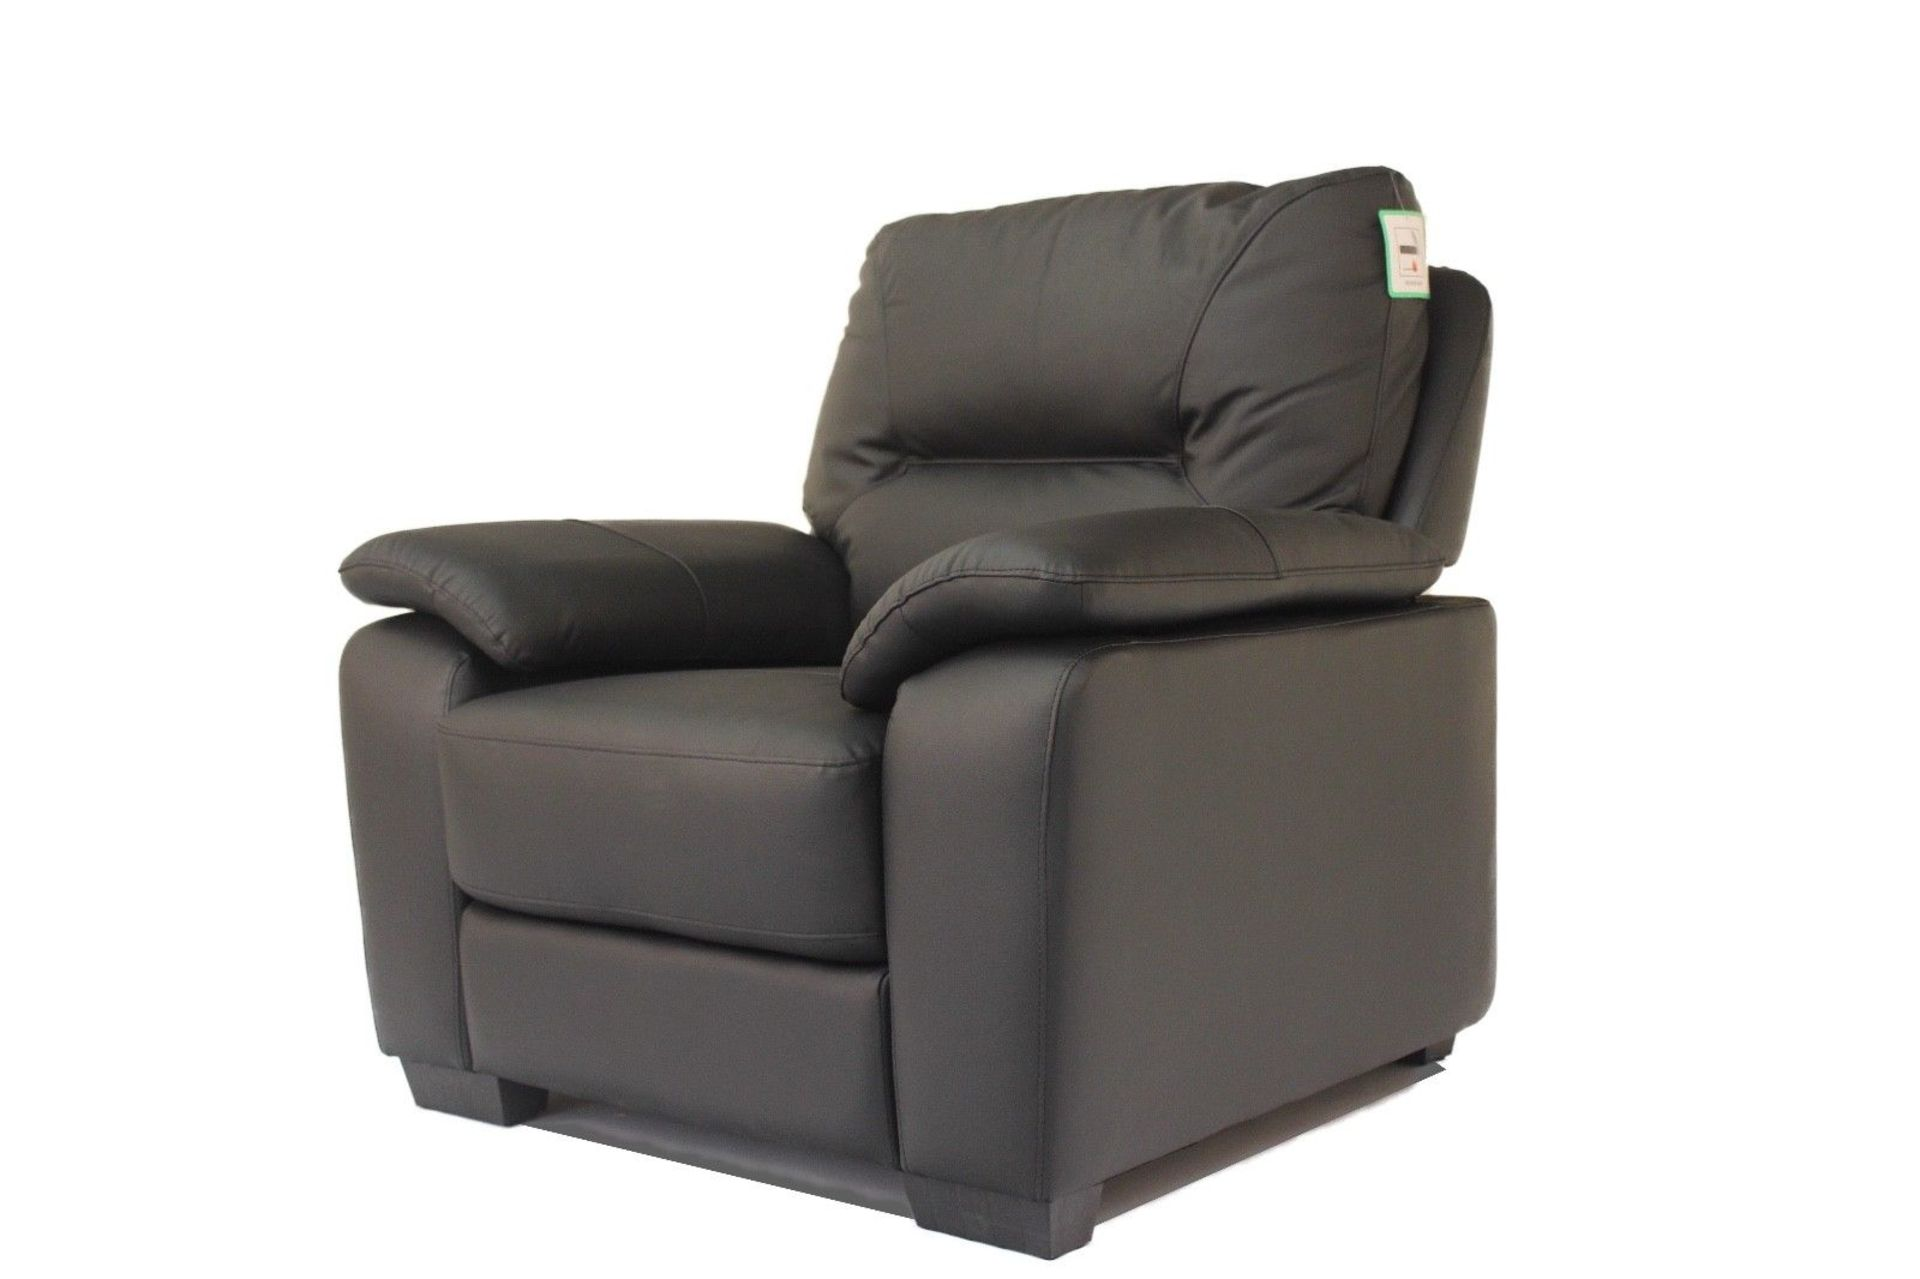 Lot 18 - Stamford BLACK Single Seat Real Leather Chair - No Reserve